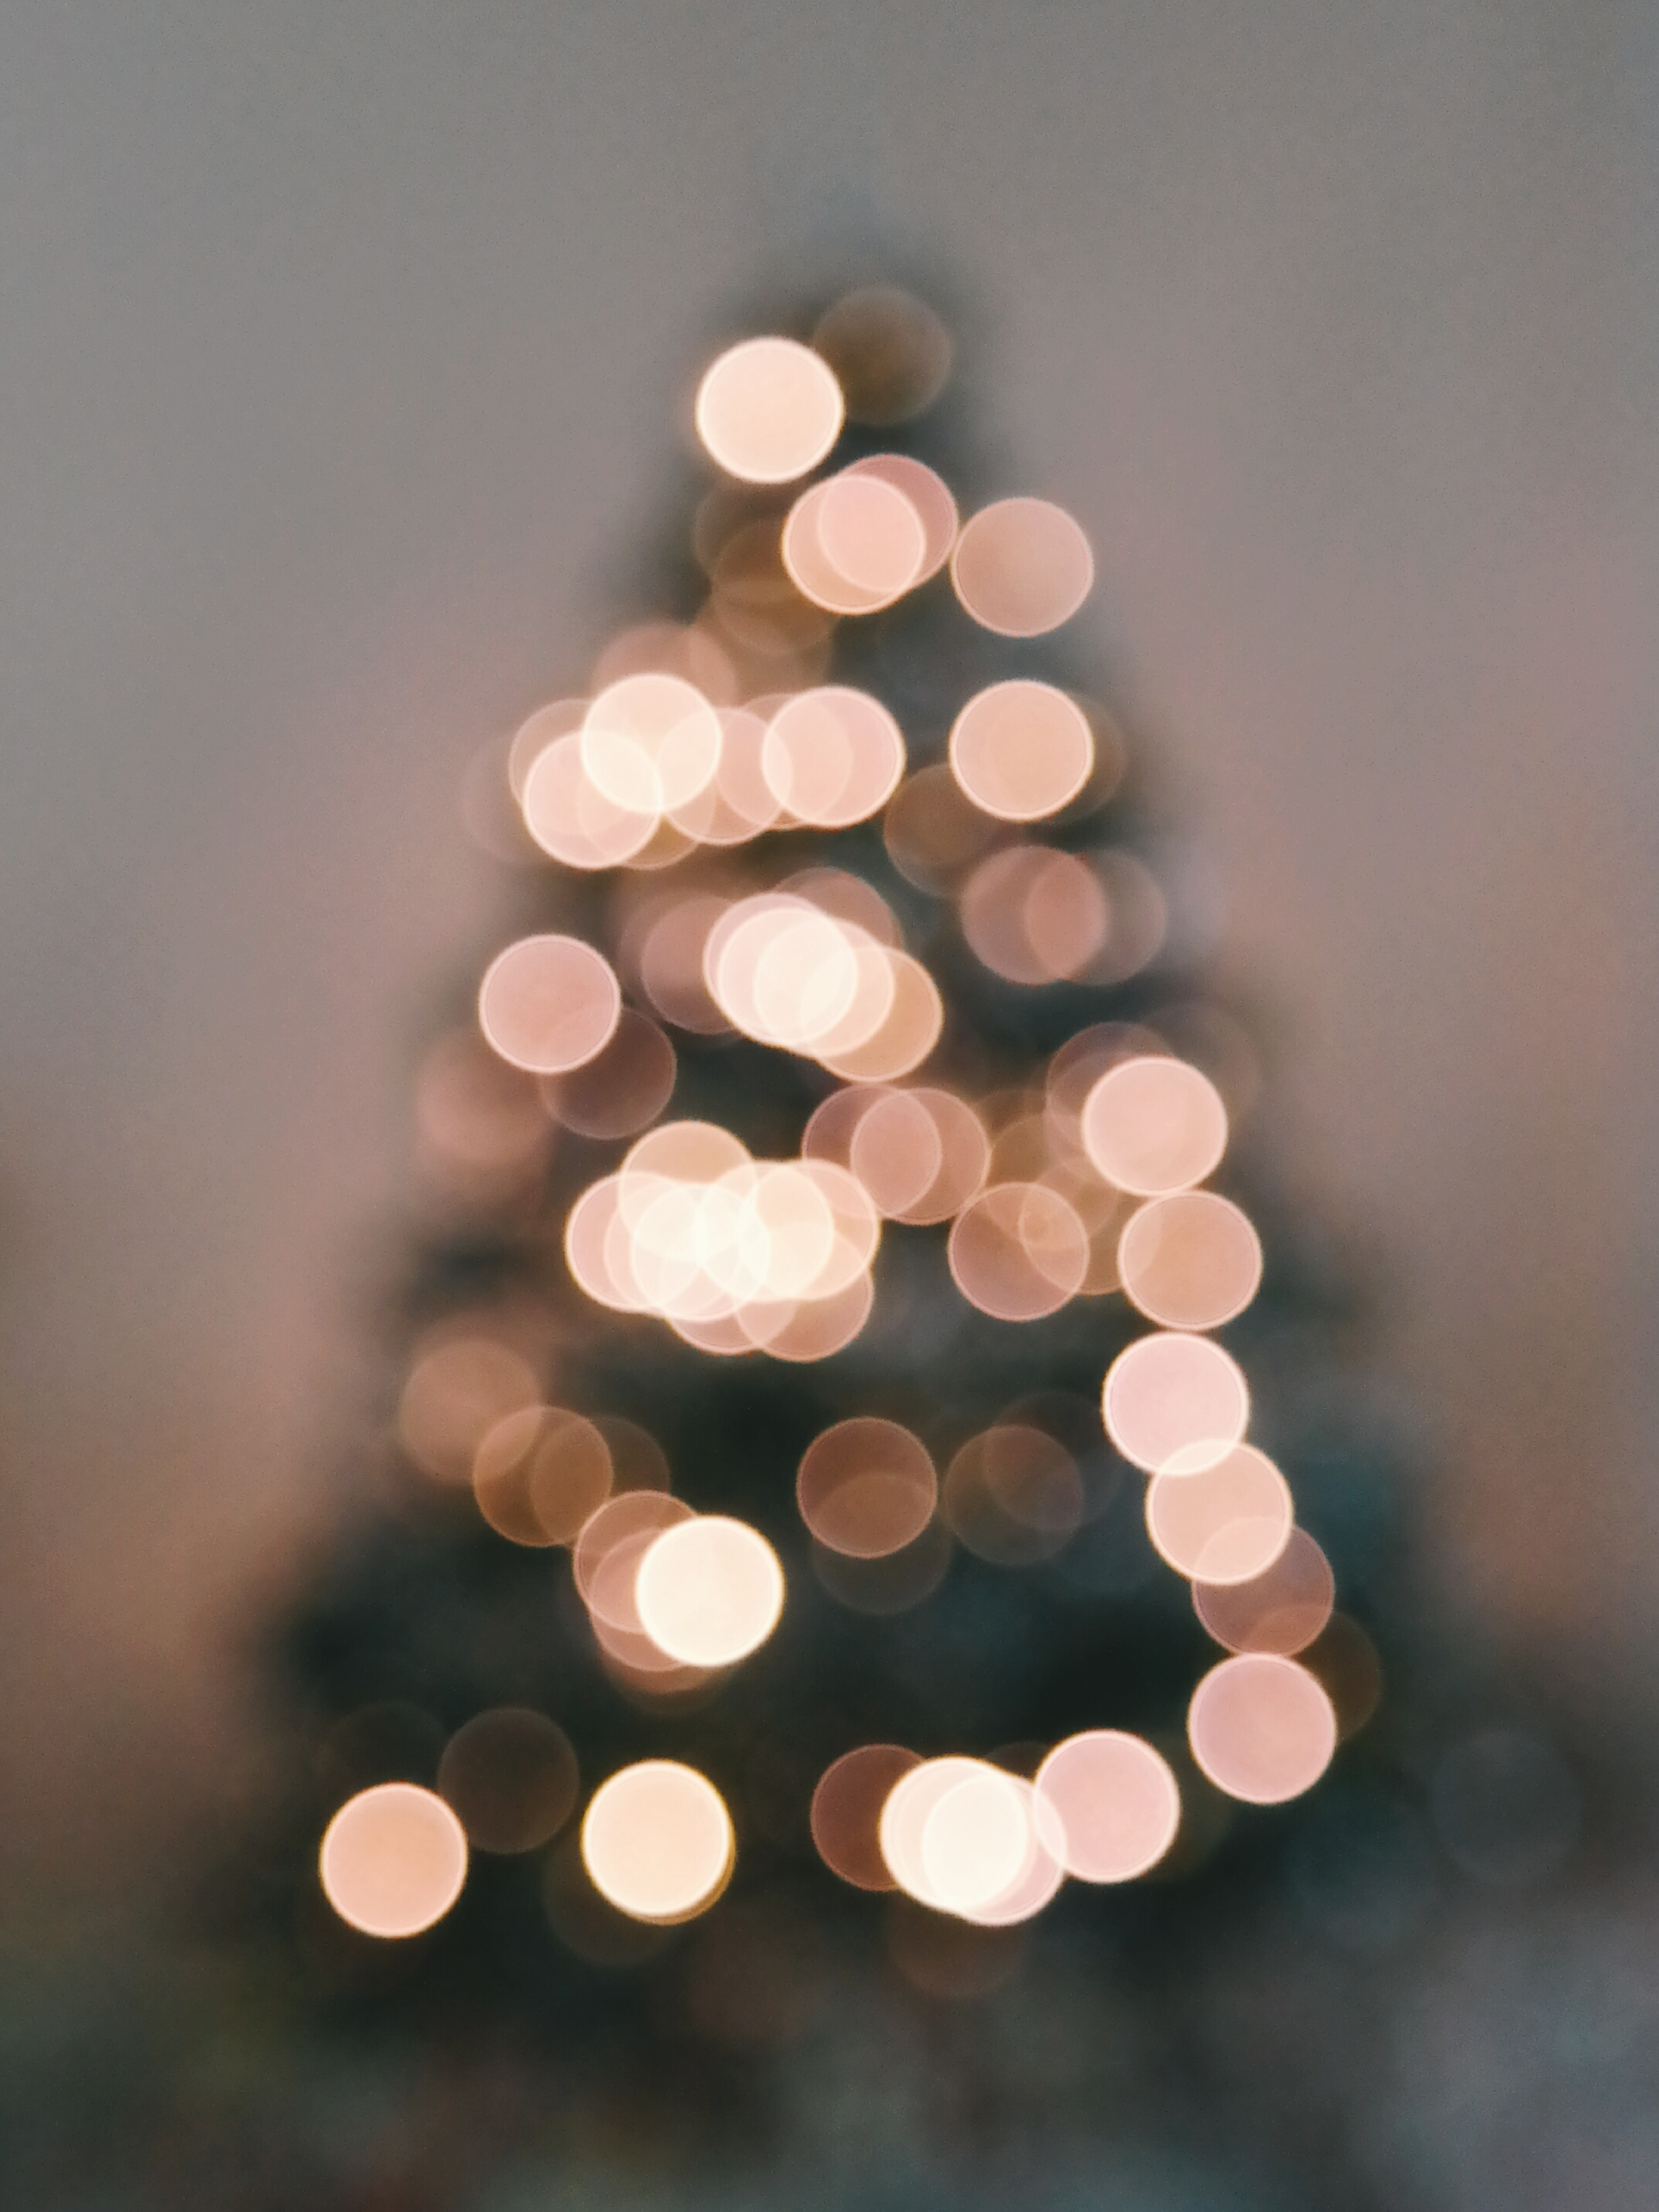 Beautiful Wallpapers For Iphone X Free Stock Photo Of Blur Bokeh Christmas